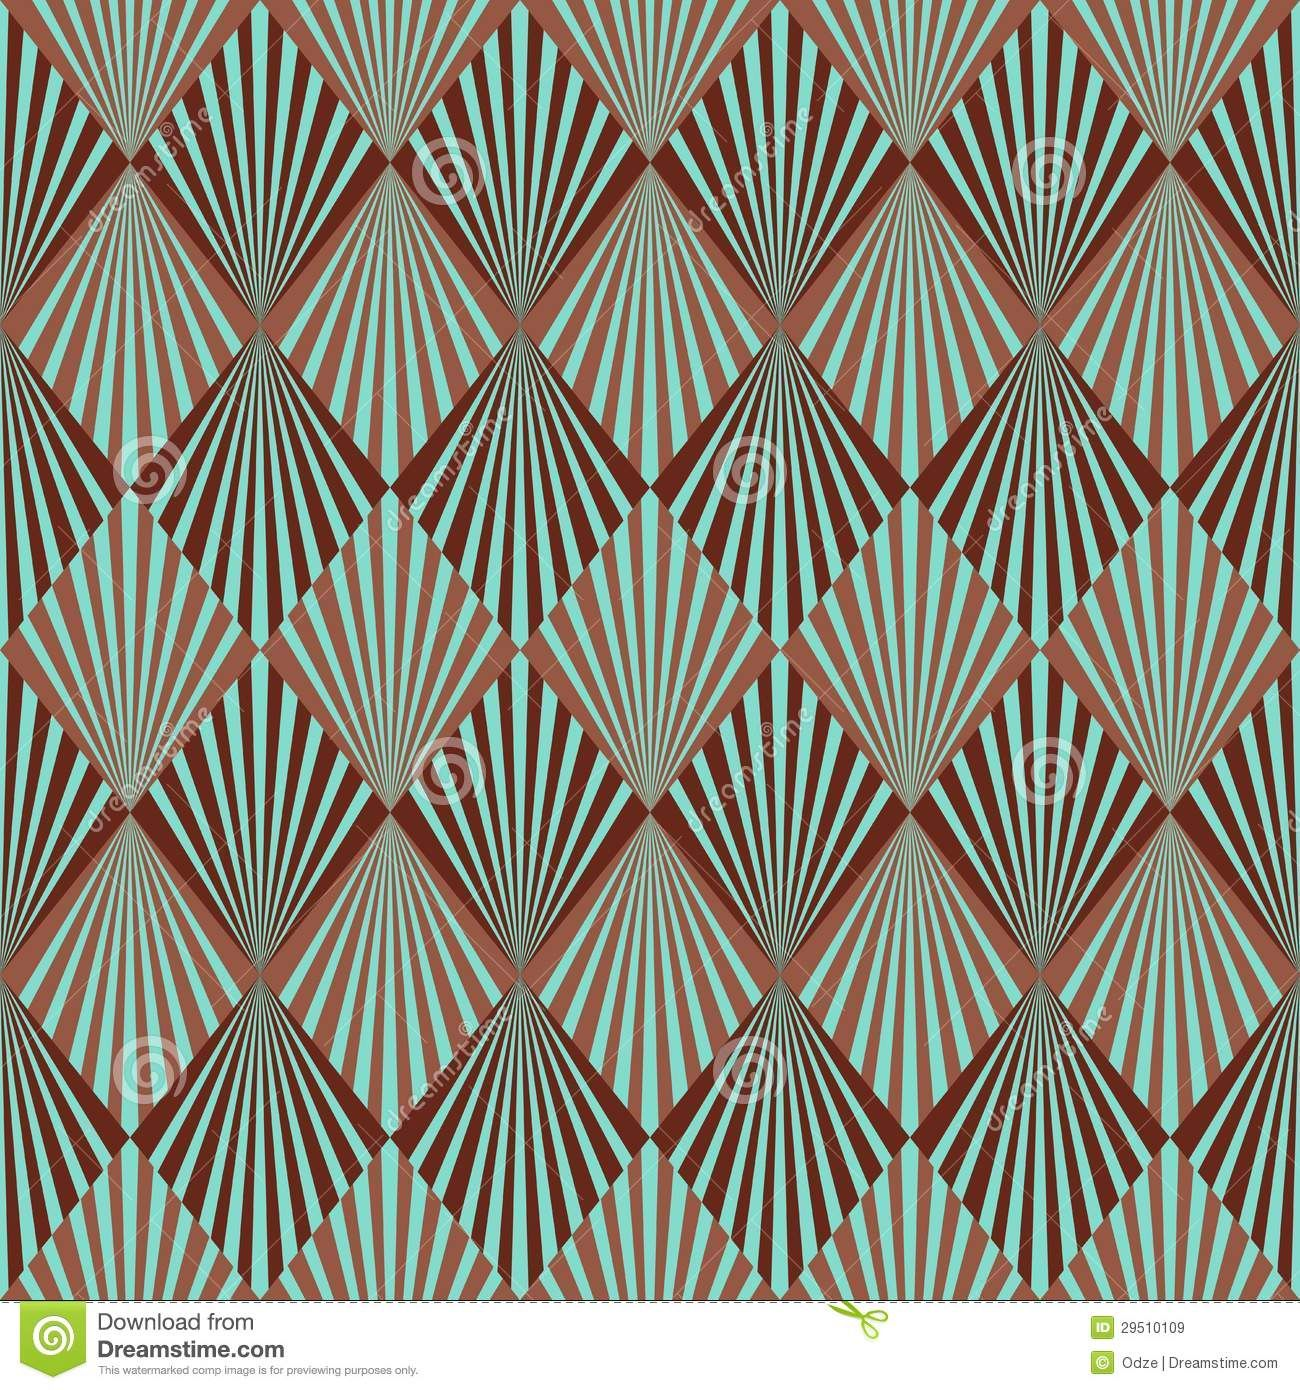 Art Deco Pattern - Download From Over 26 Million High Quality Stock ...